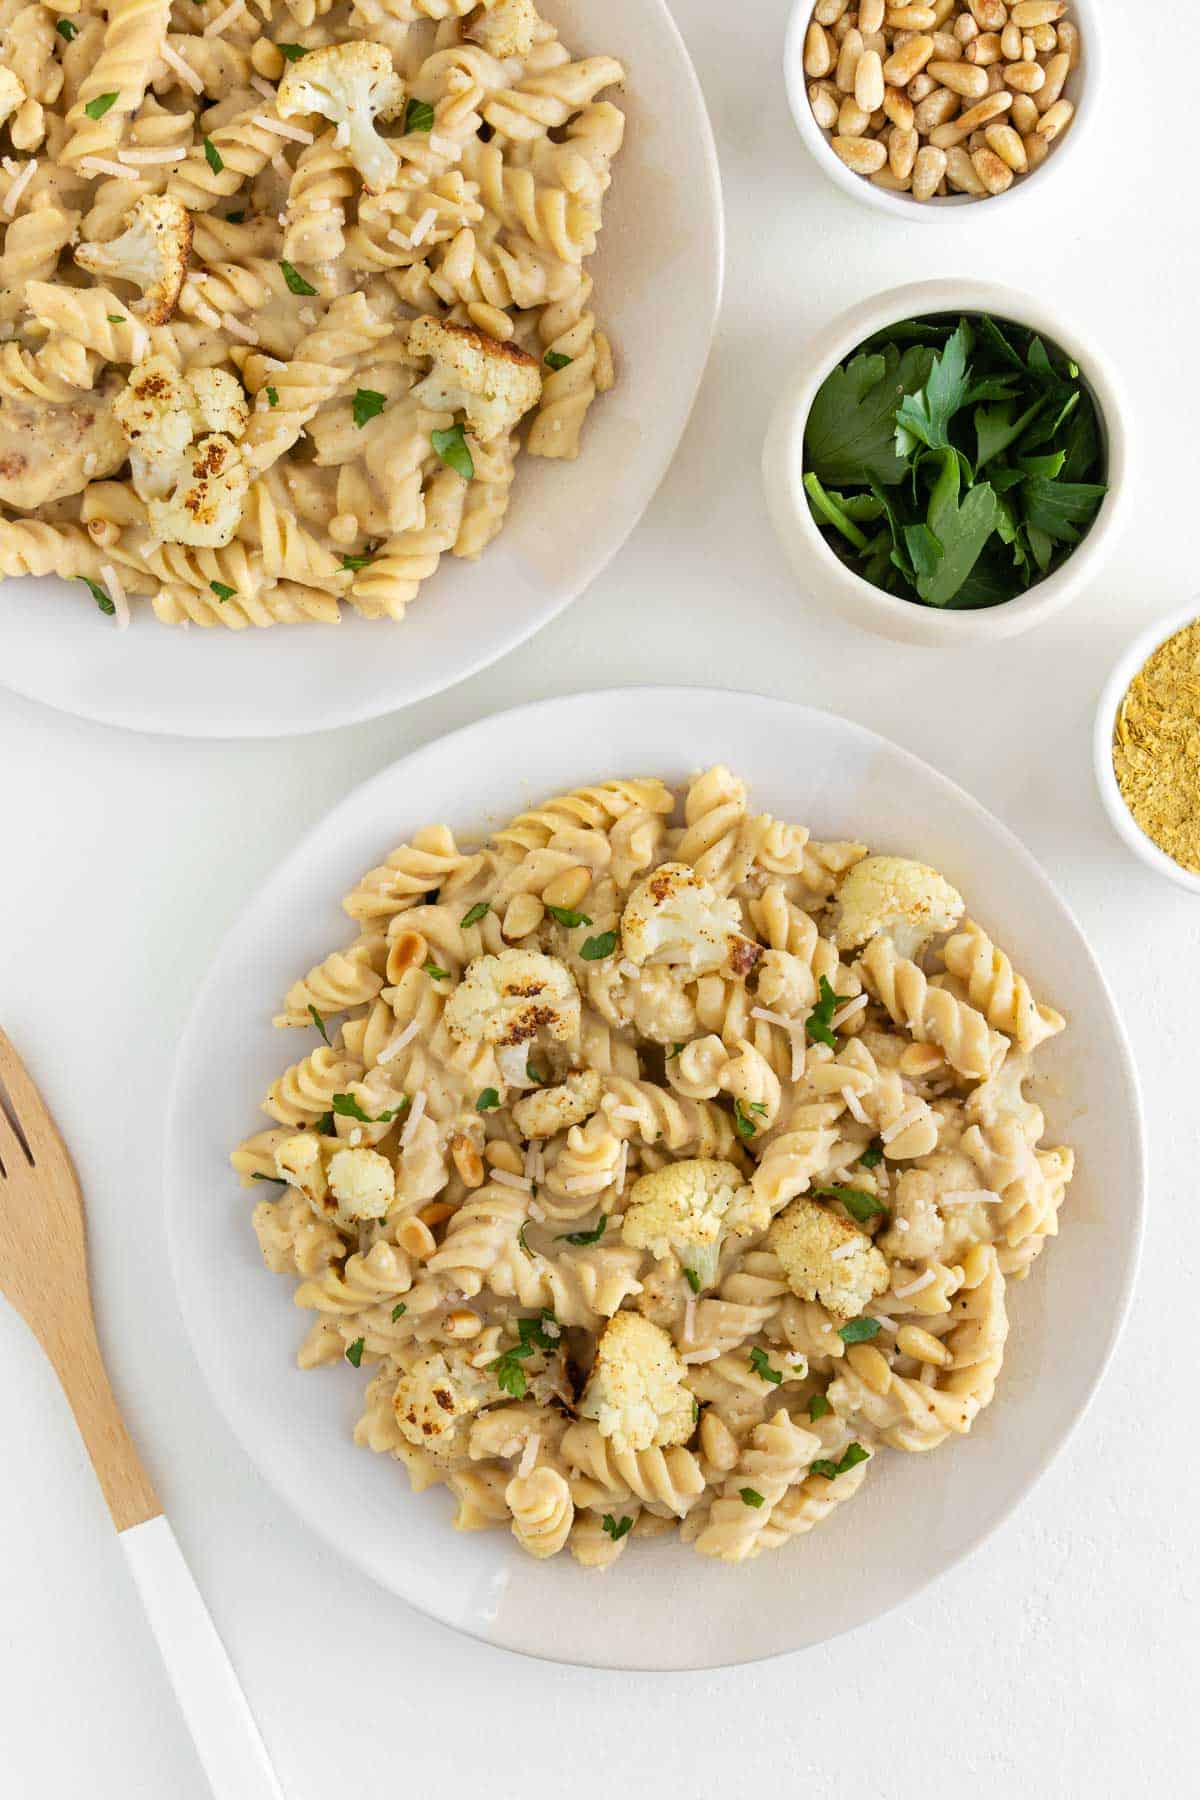 two ceramic plates topped with roasted cauliflower alfredo, surrounded by a wooden fork and small bowls with parsley and pine nuts